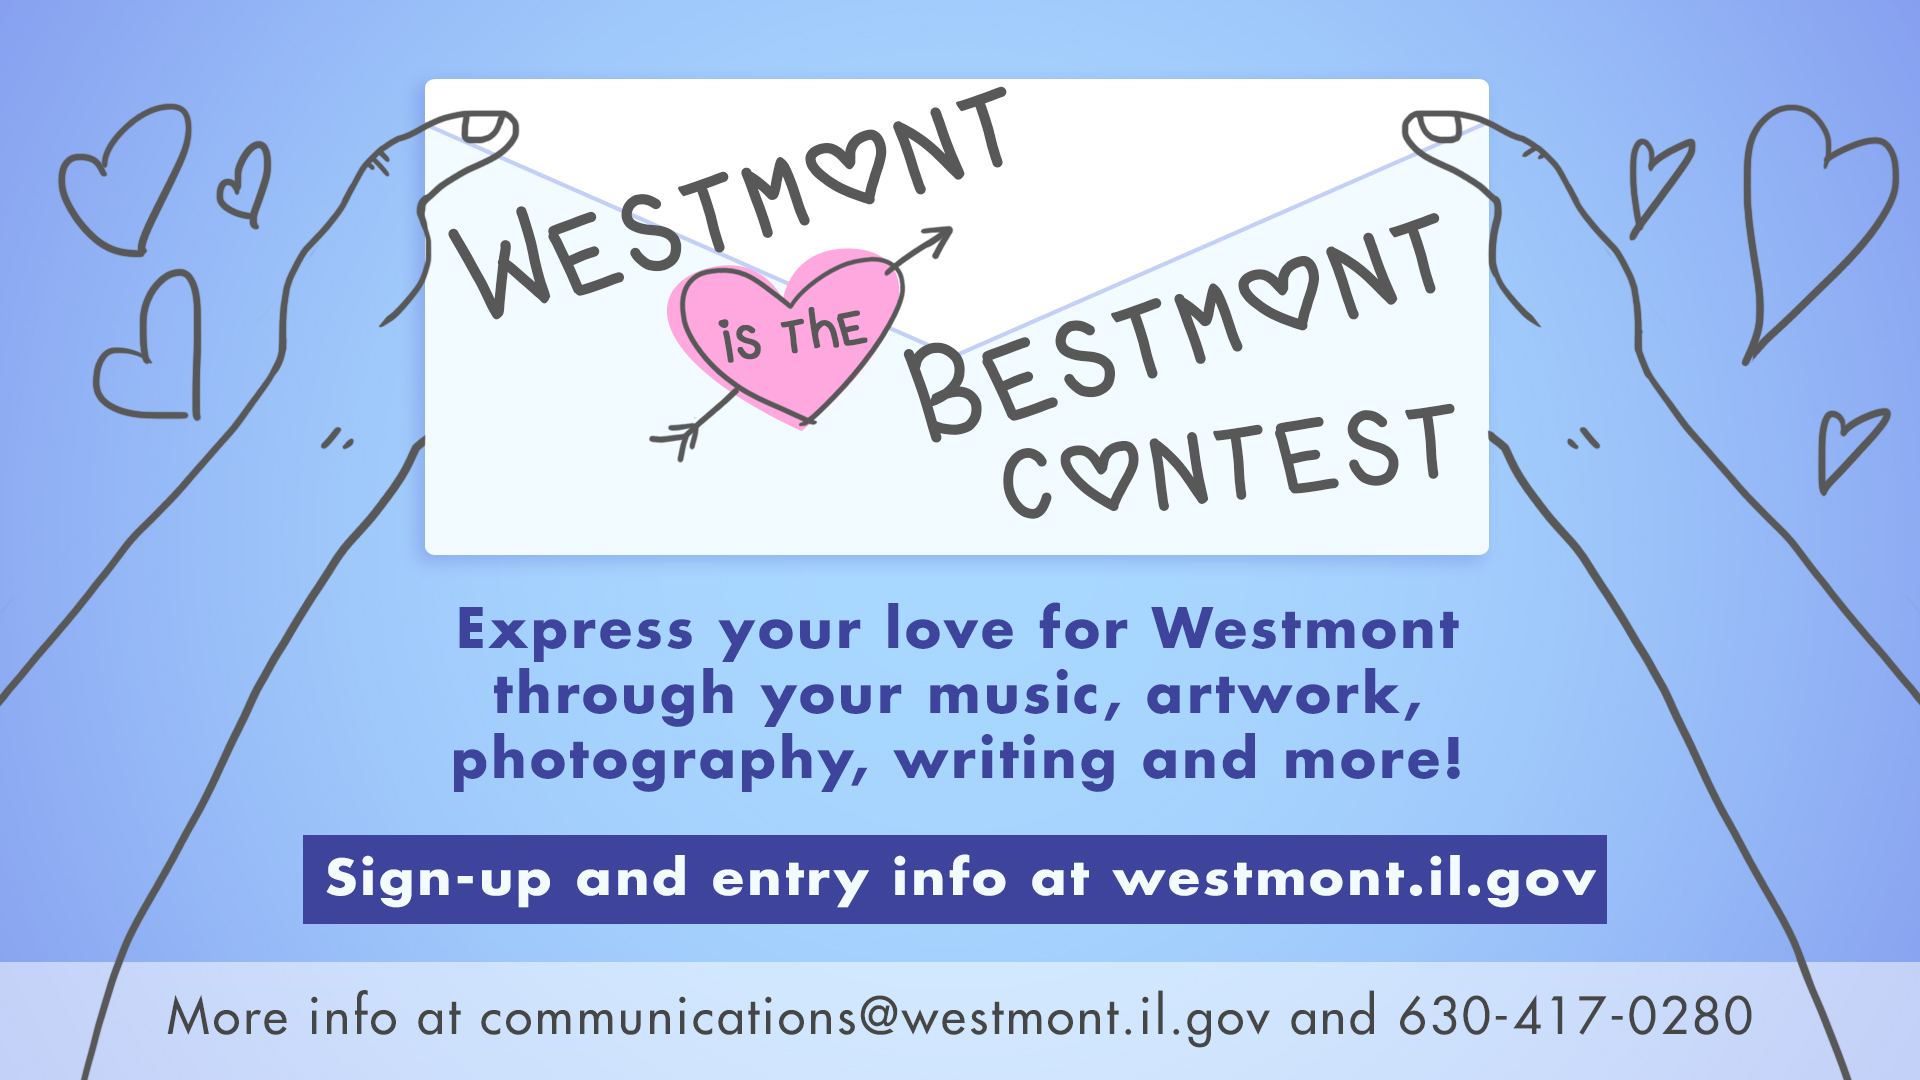 Westmont Is The Bestmont Contest